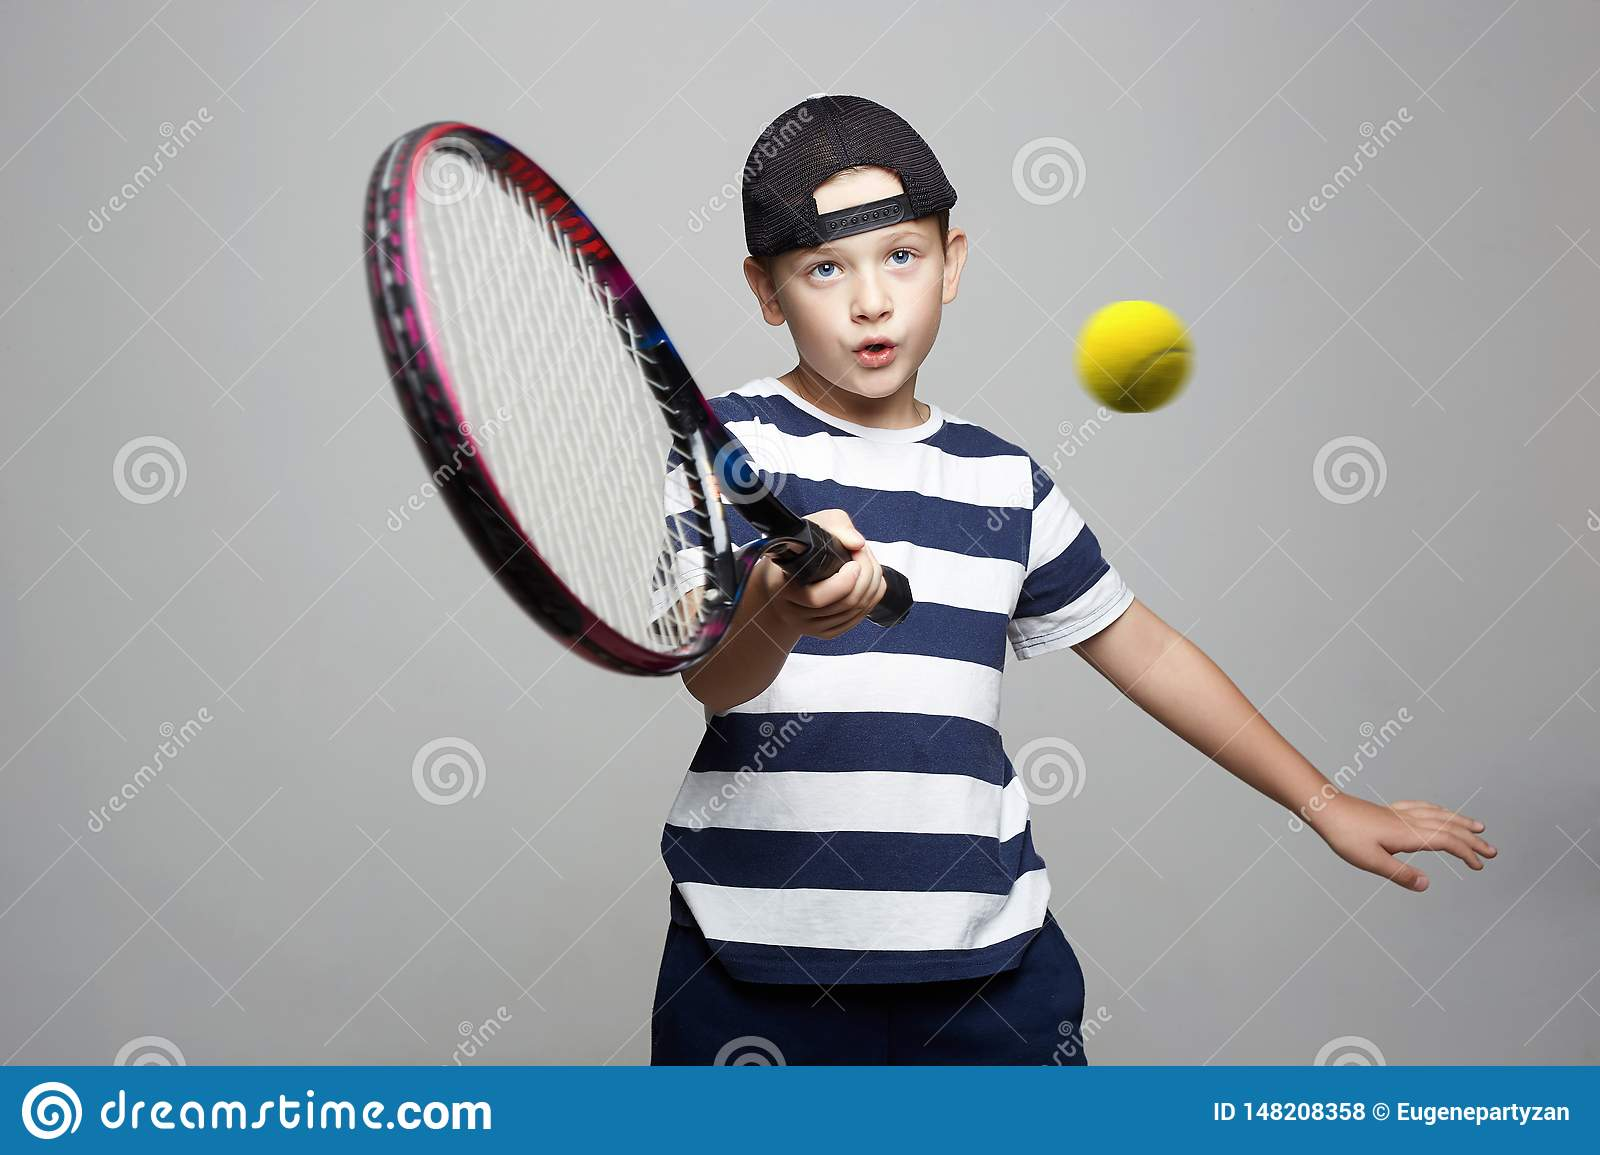 Sport kid. Child with tennis racquet and ball